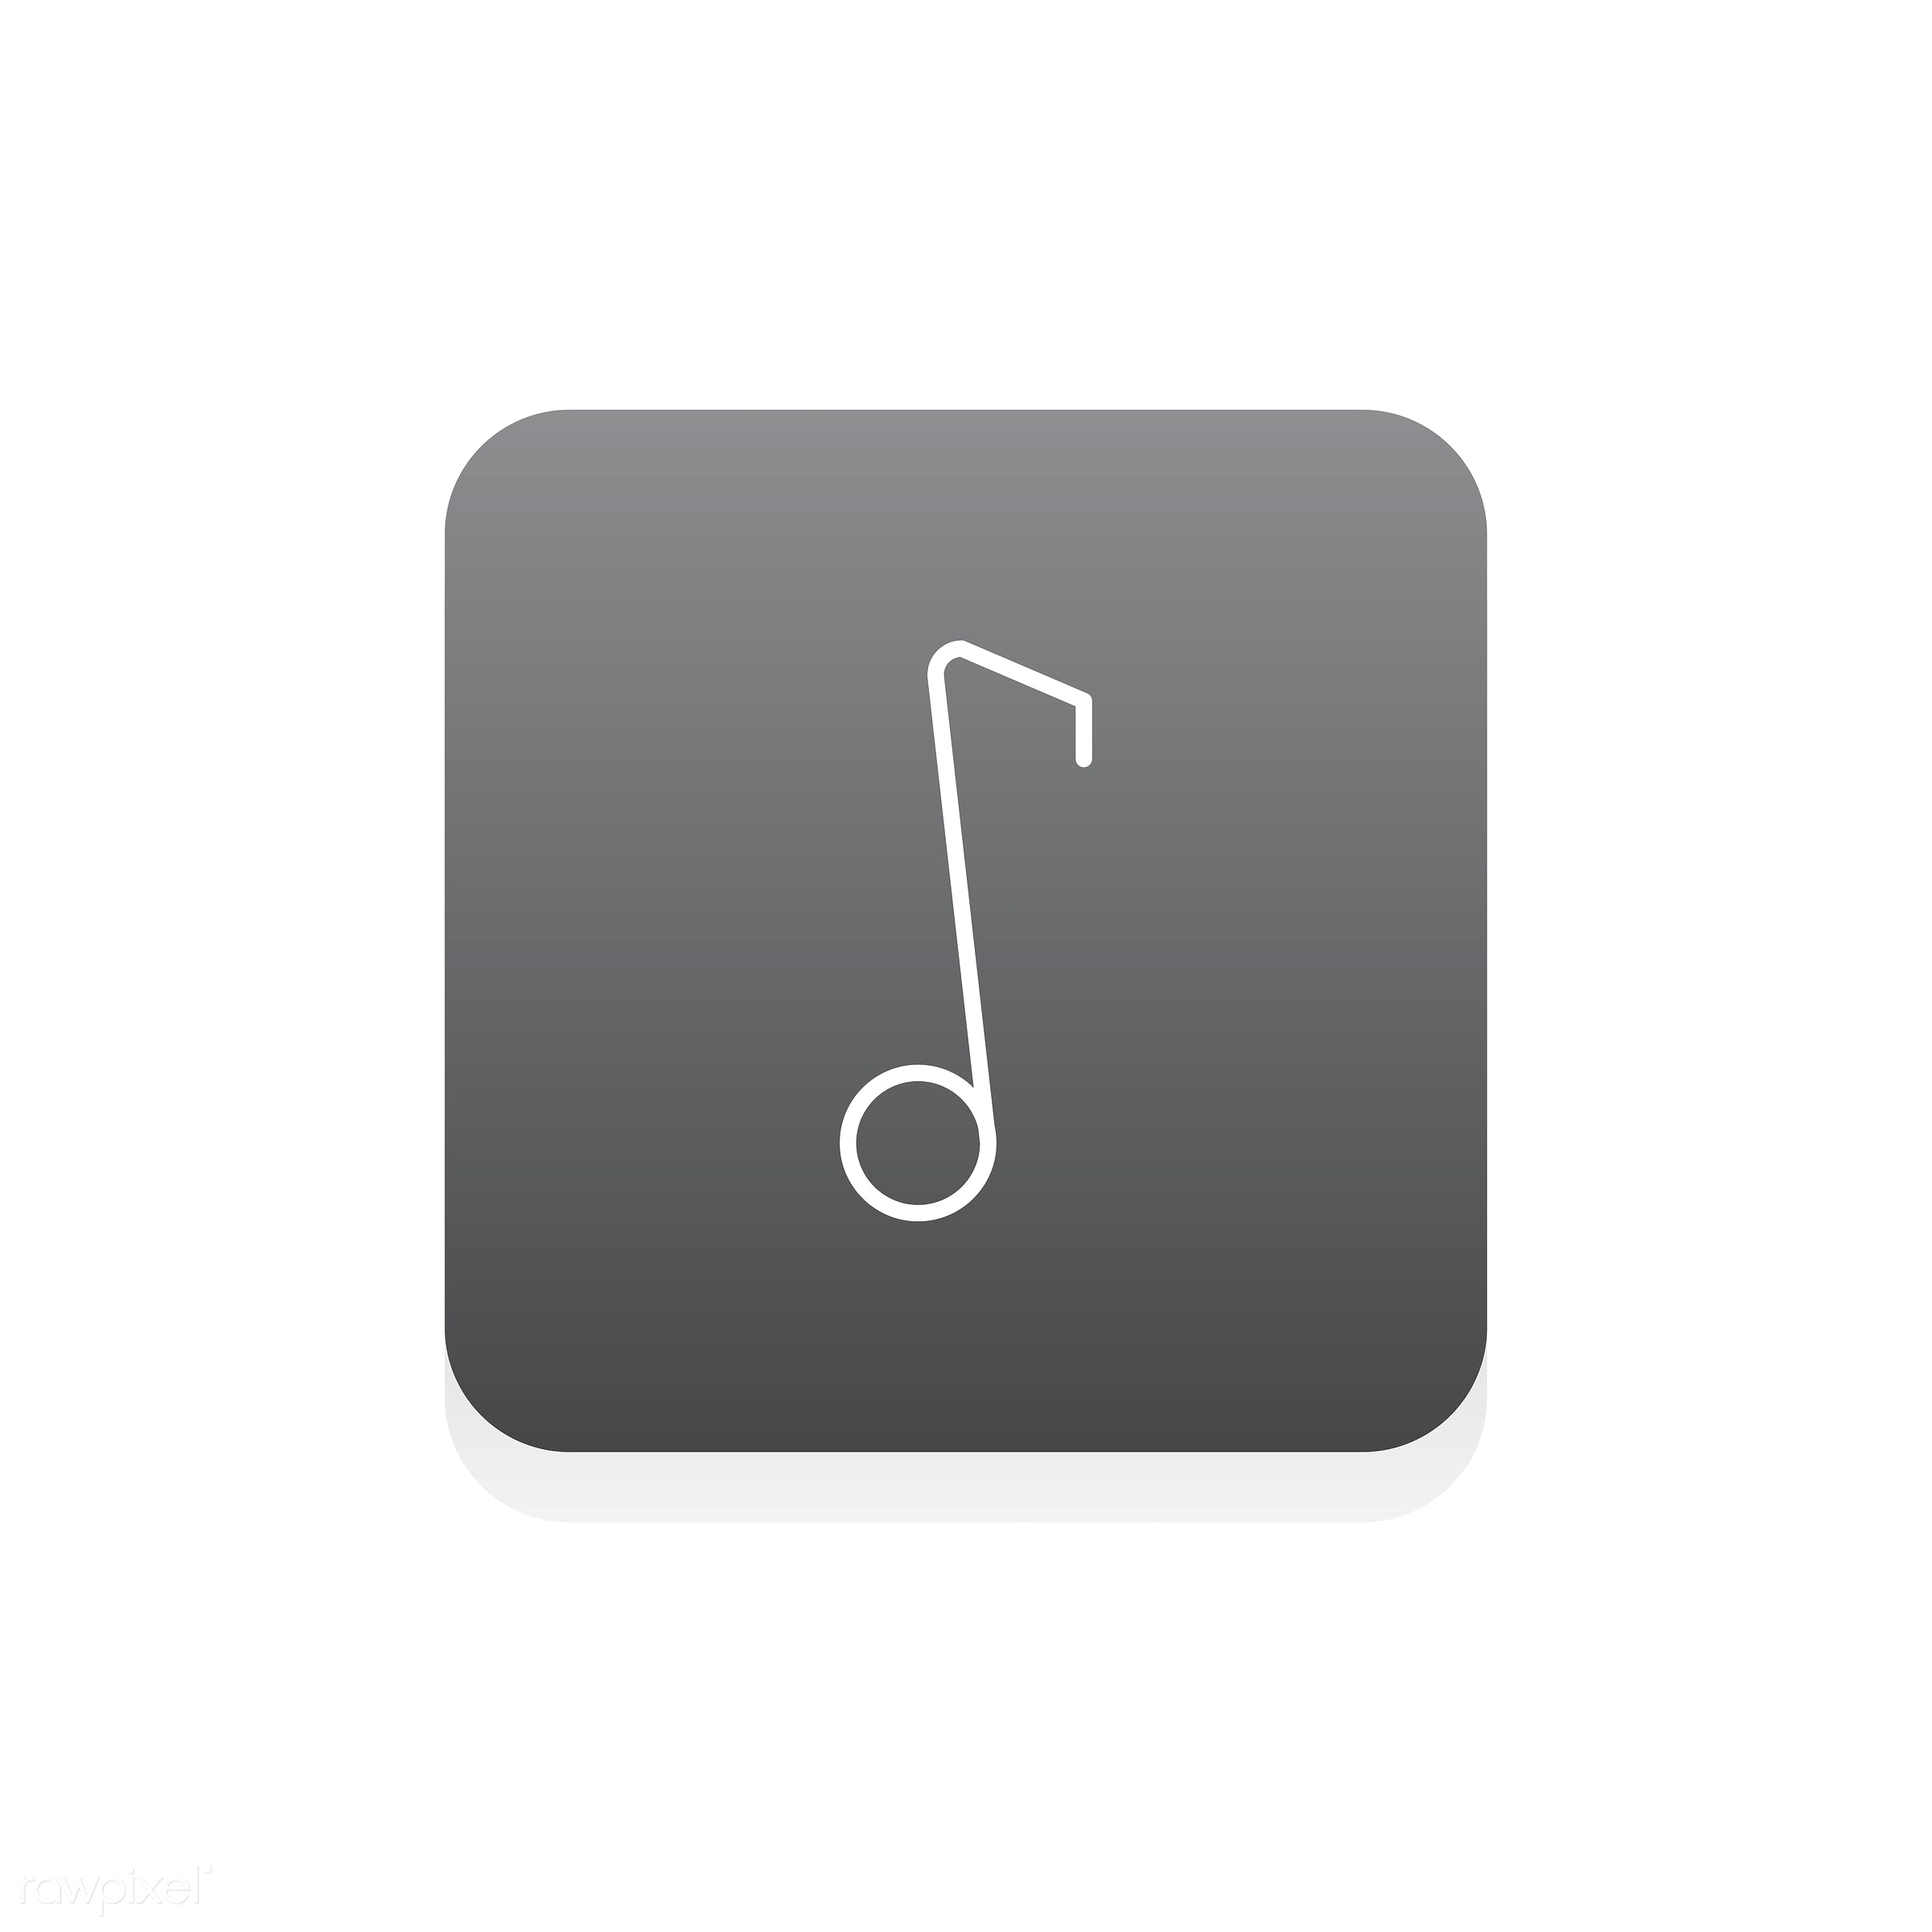 Vector of music note icon - music, audio, design, entertainment, flat, graphic, icon, illustration, isolated, layout, sound...